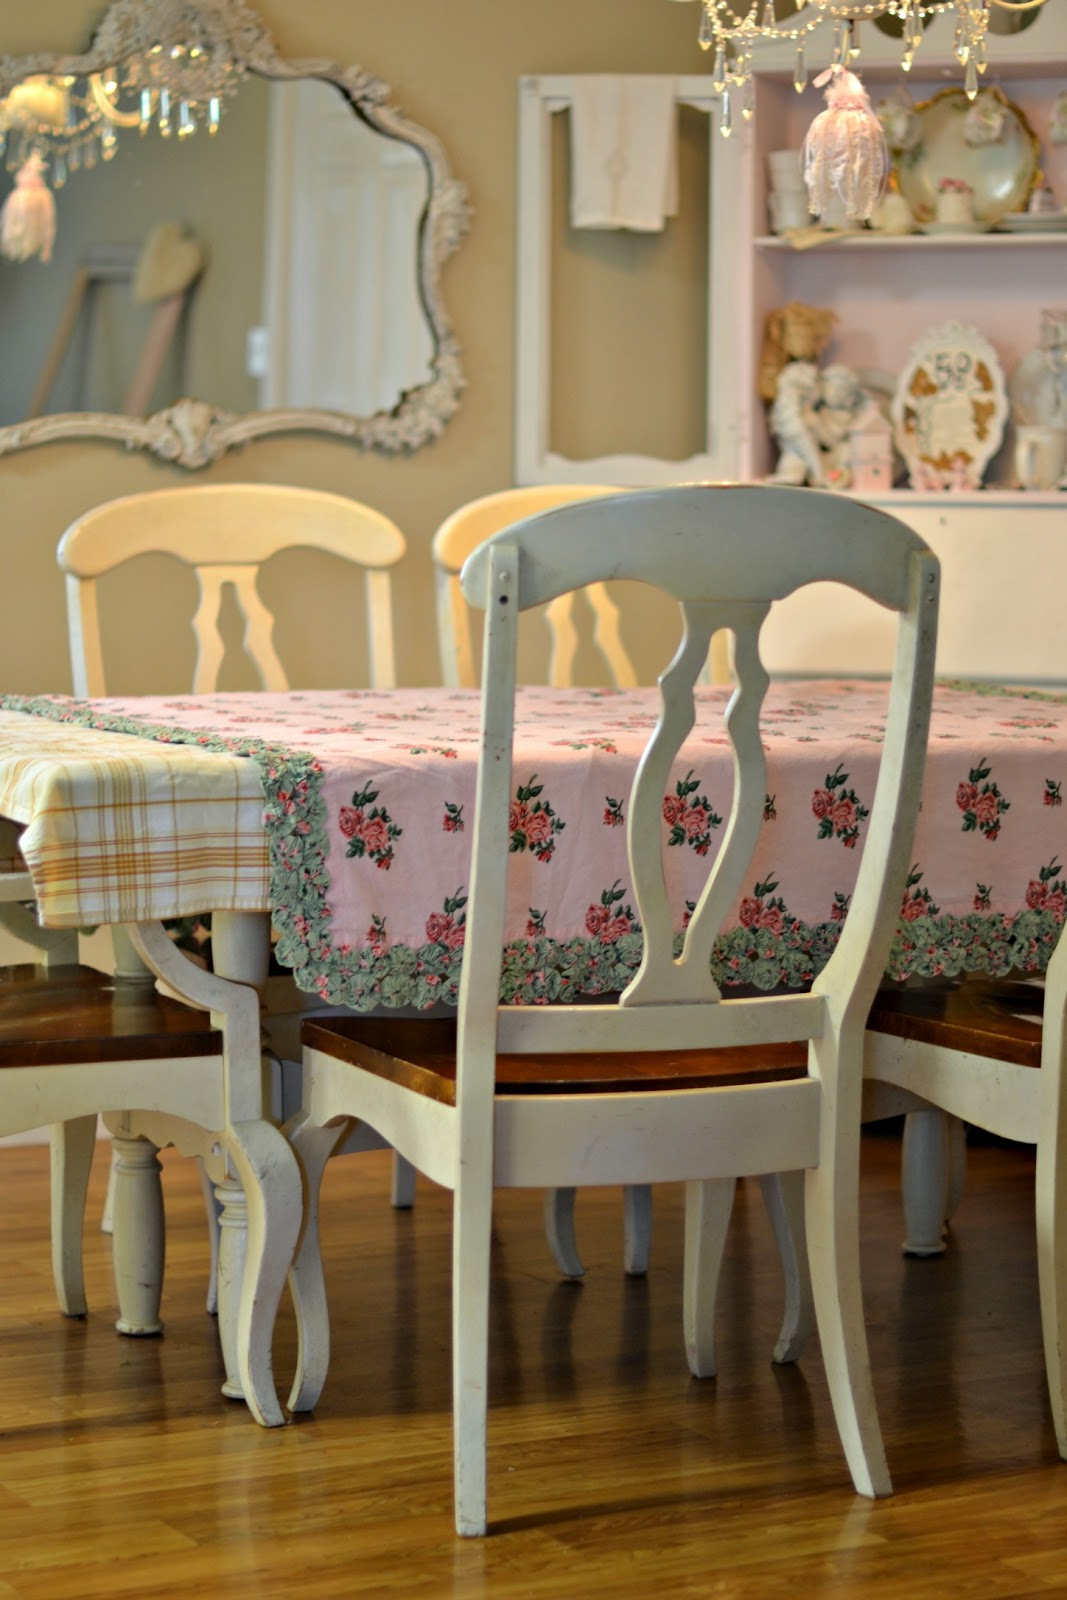 Olivia's Romantic Home: snuggly pinks